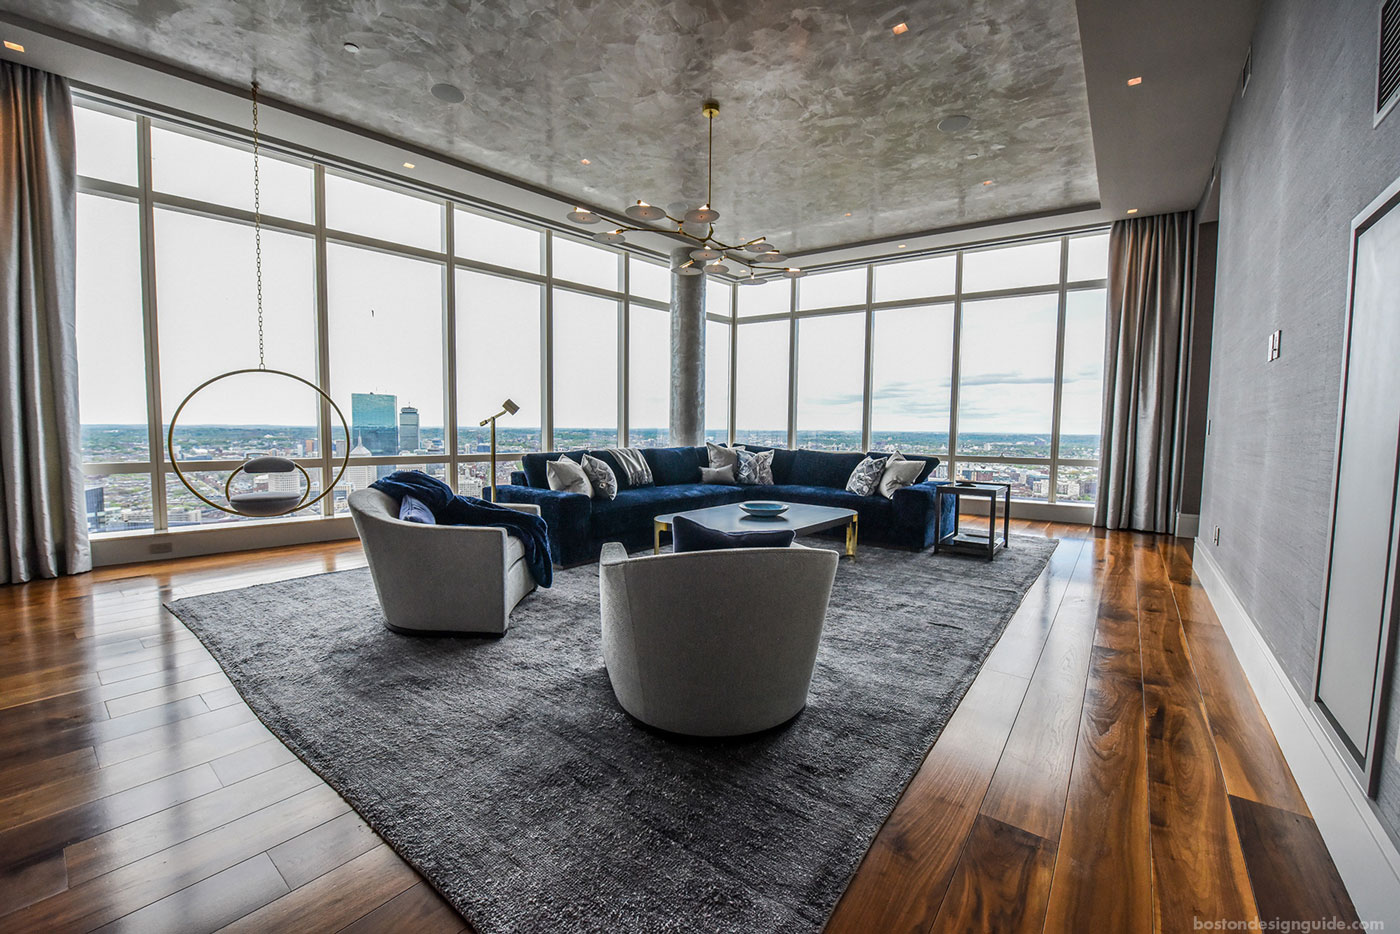 Navy living room set in penthouse apartment